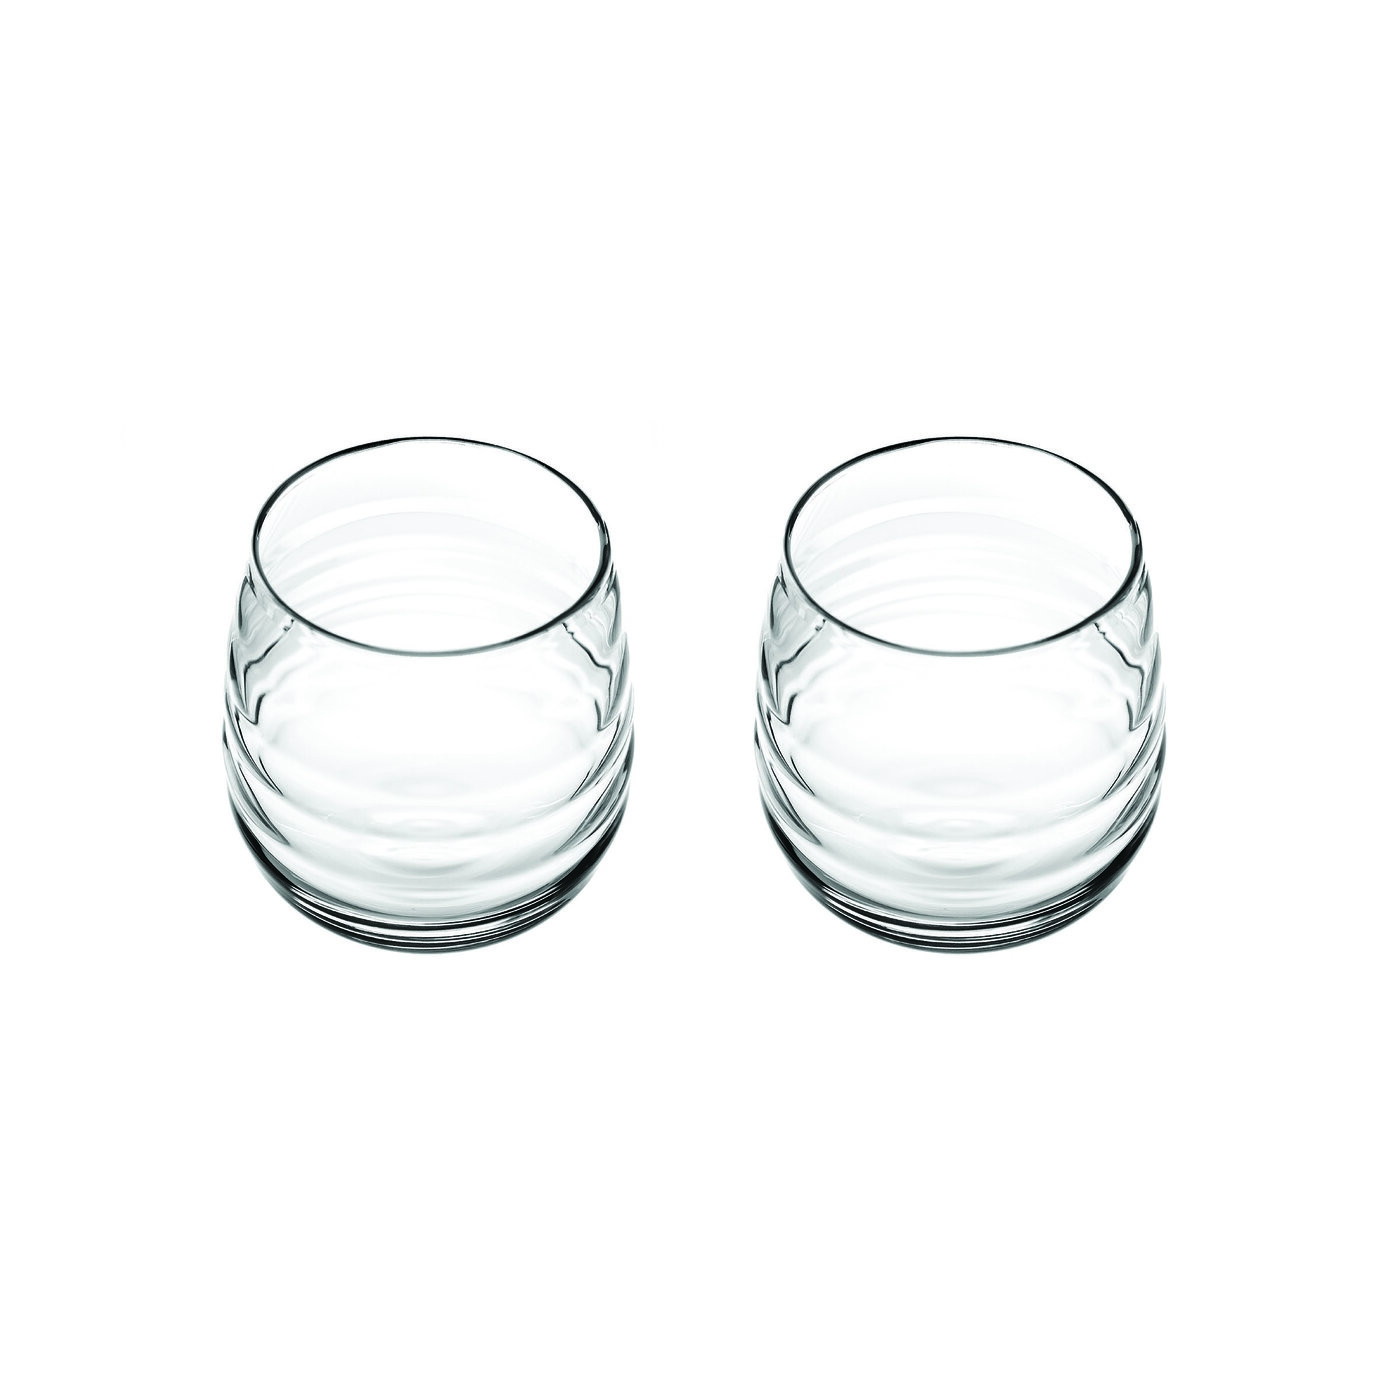 Portmeirion Sophie Conran Glassware Set of 2 Double Old Fashioneds (Balloon Glass) image number 0